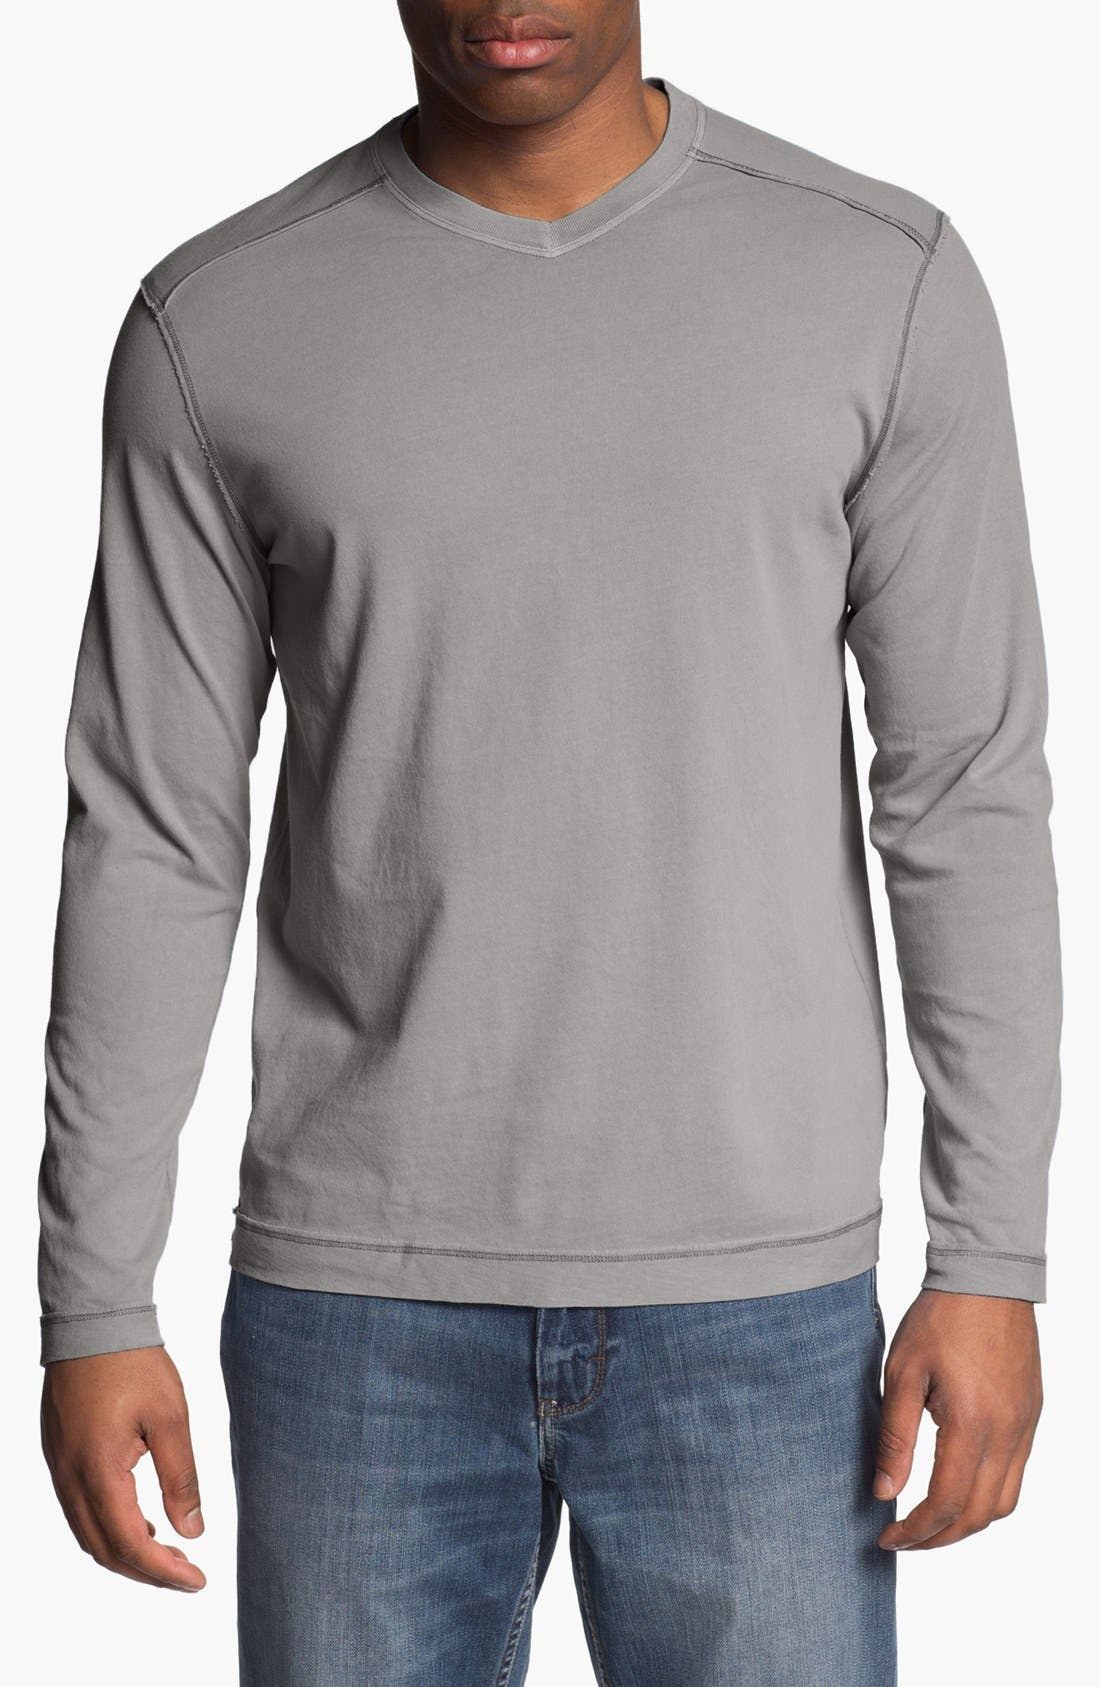 Alternate Image 1 Selected - Tommy Bahama Denim 'Cohen' Island Modern Fit Long Sleeve V-Neck T-Shirt